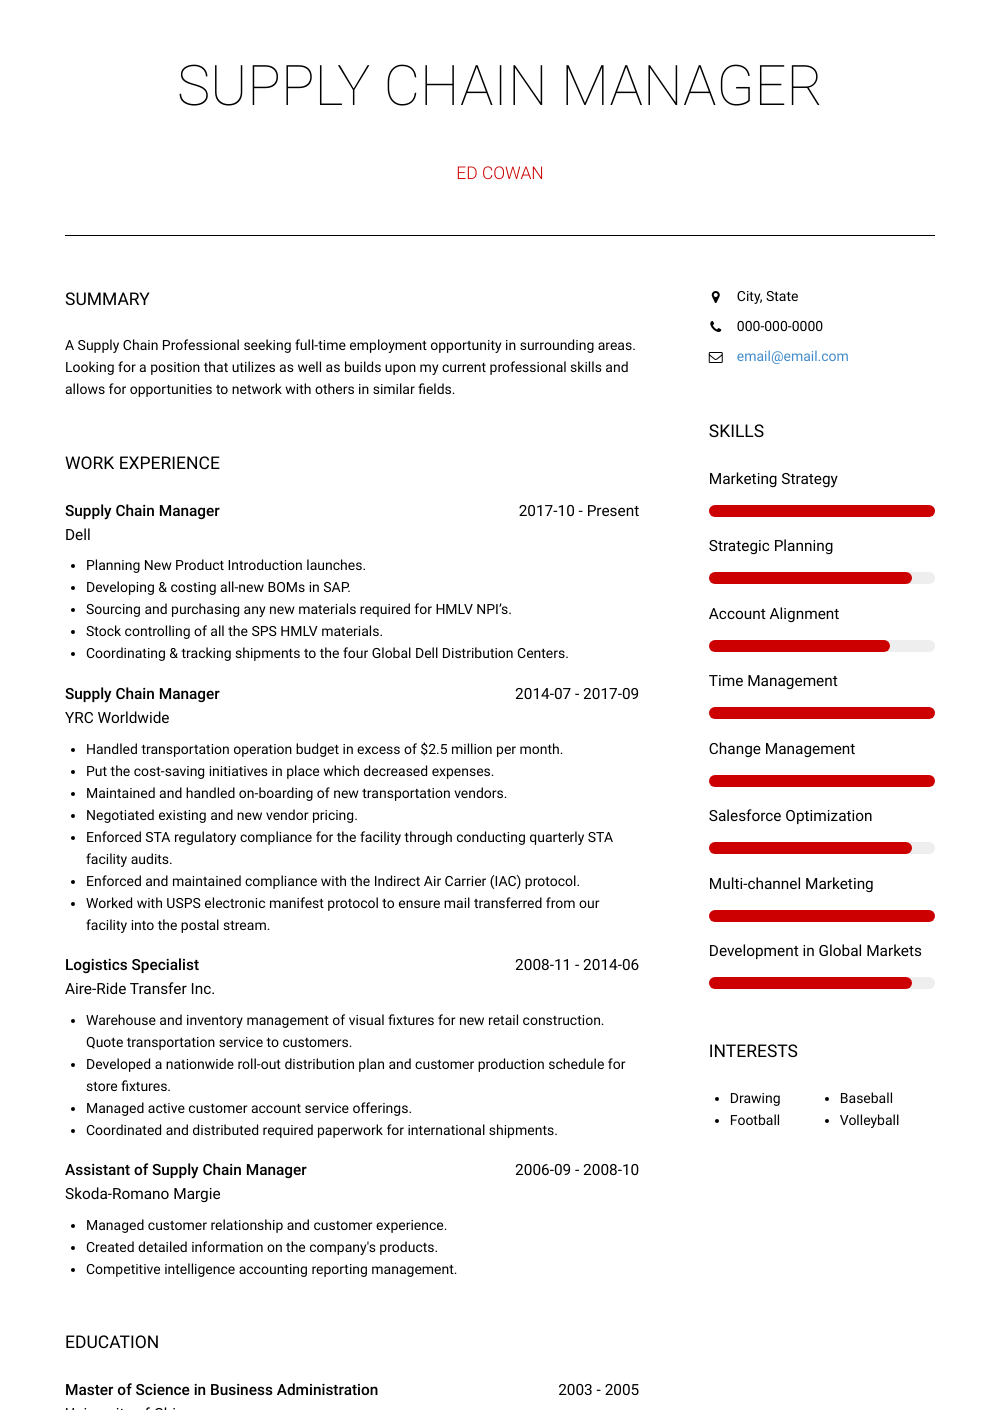 Supply Chain Manager Resume Sample